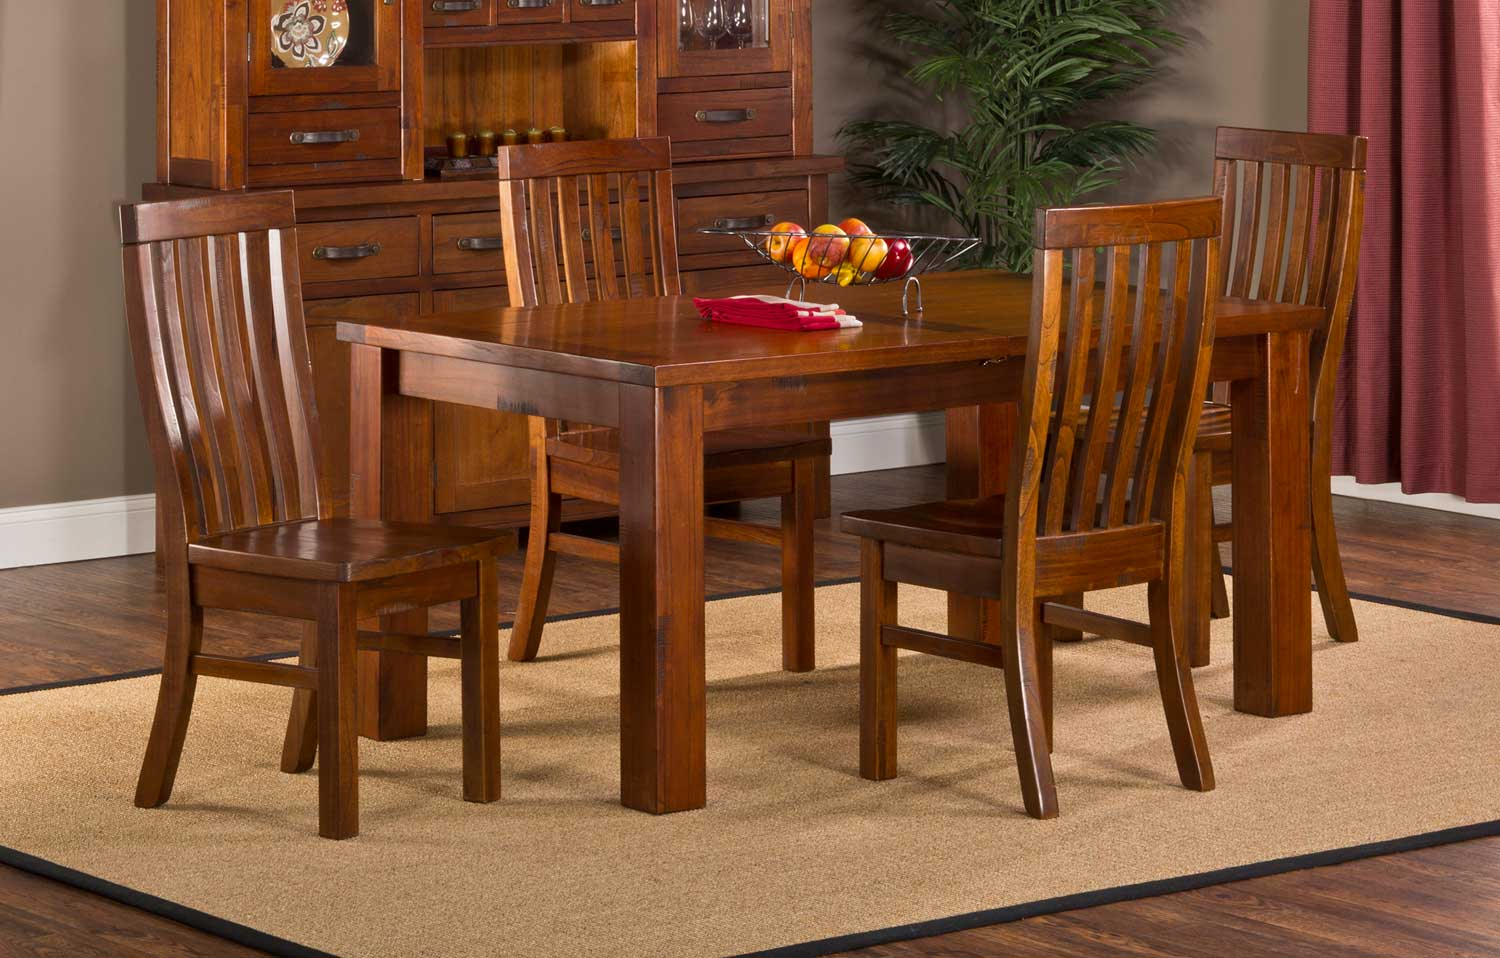 Hillsdale Outback 5-Piece Dining Set - Distressed Chestnut